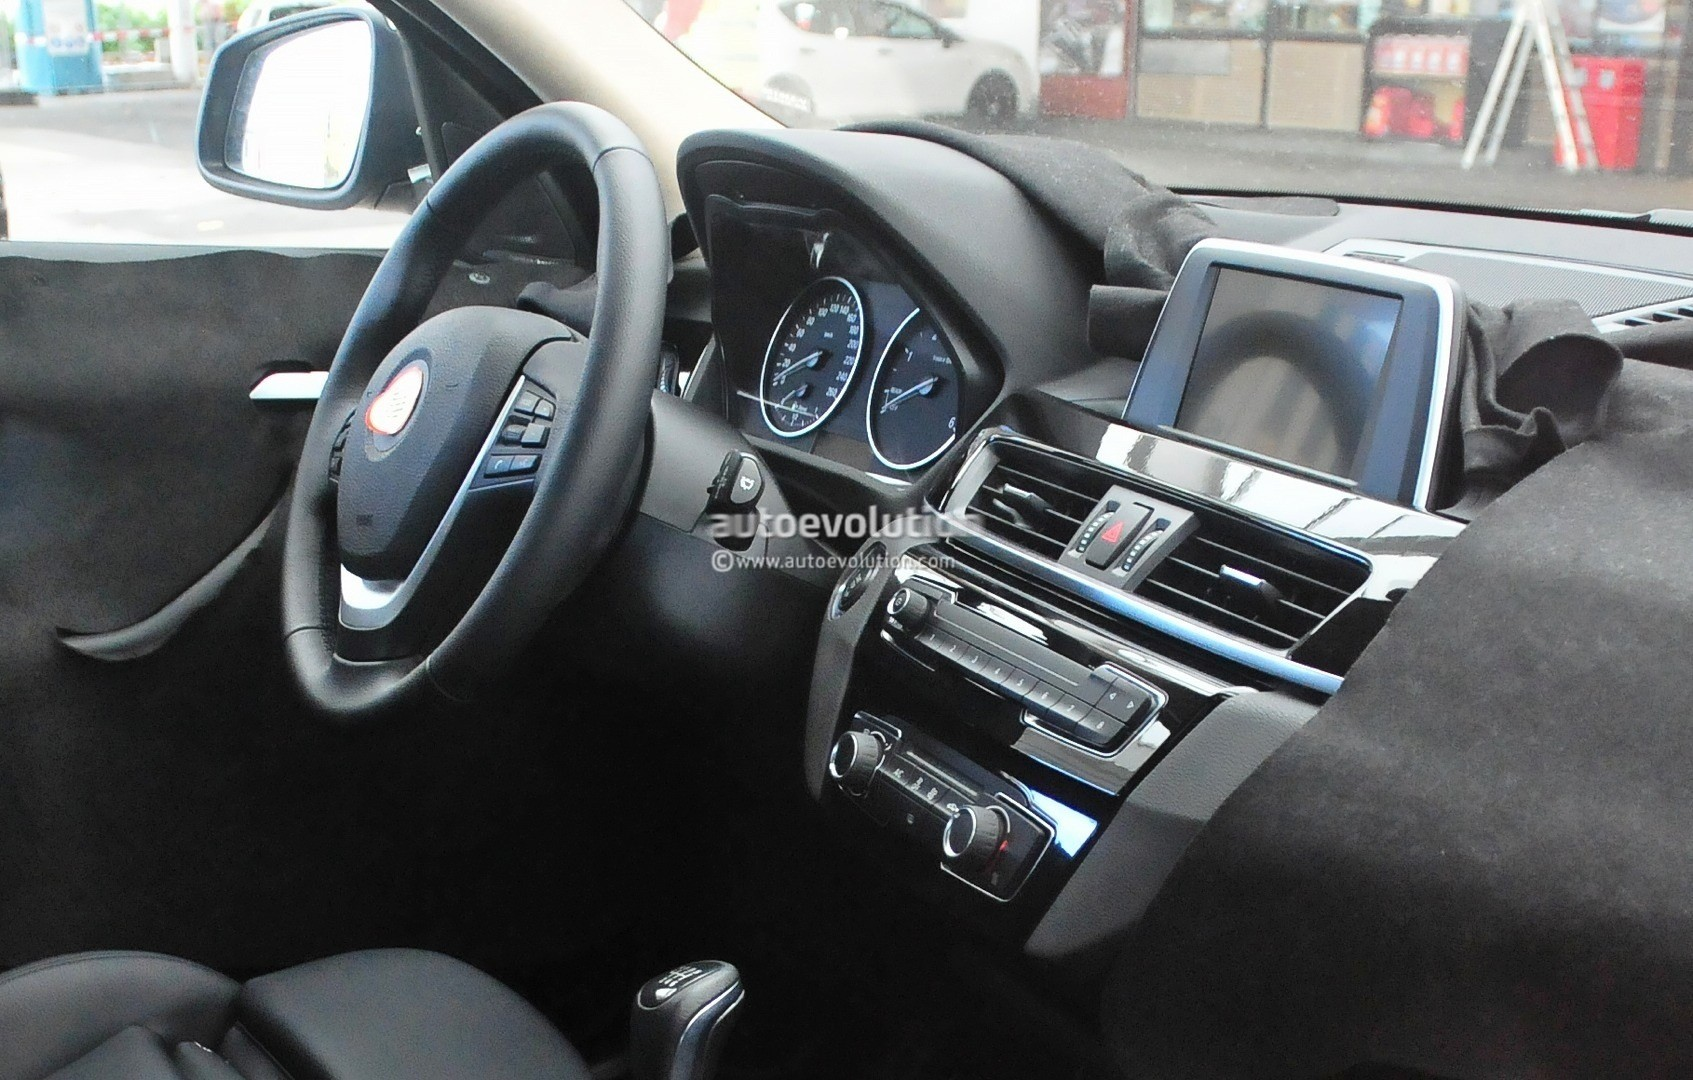 2015 - [BMW] X1 II [F48] - Page 9 2016-bmw-x1-interior-revealed-almost-in-full-photo-gallery_10